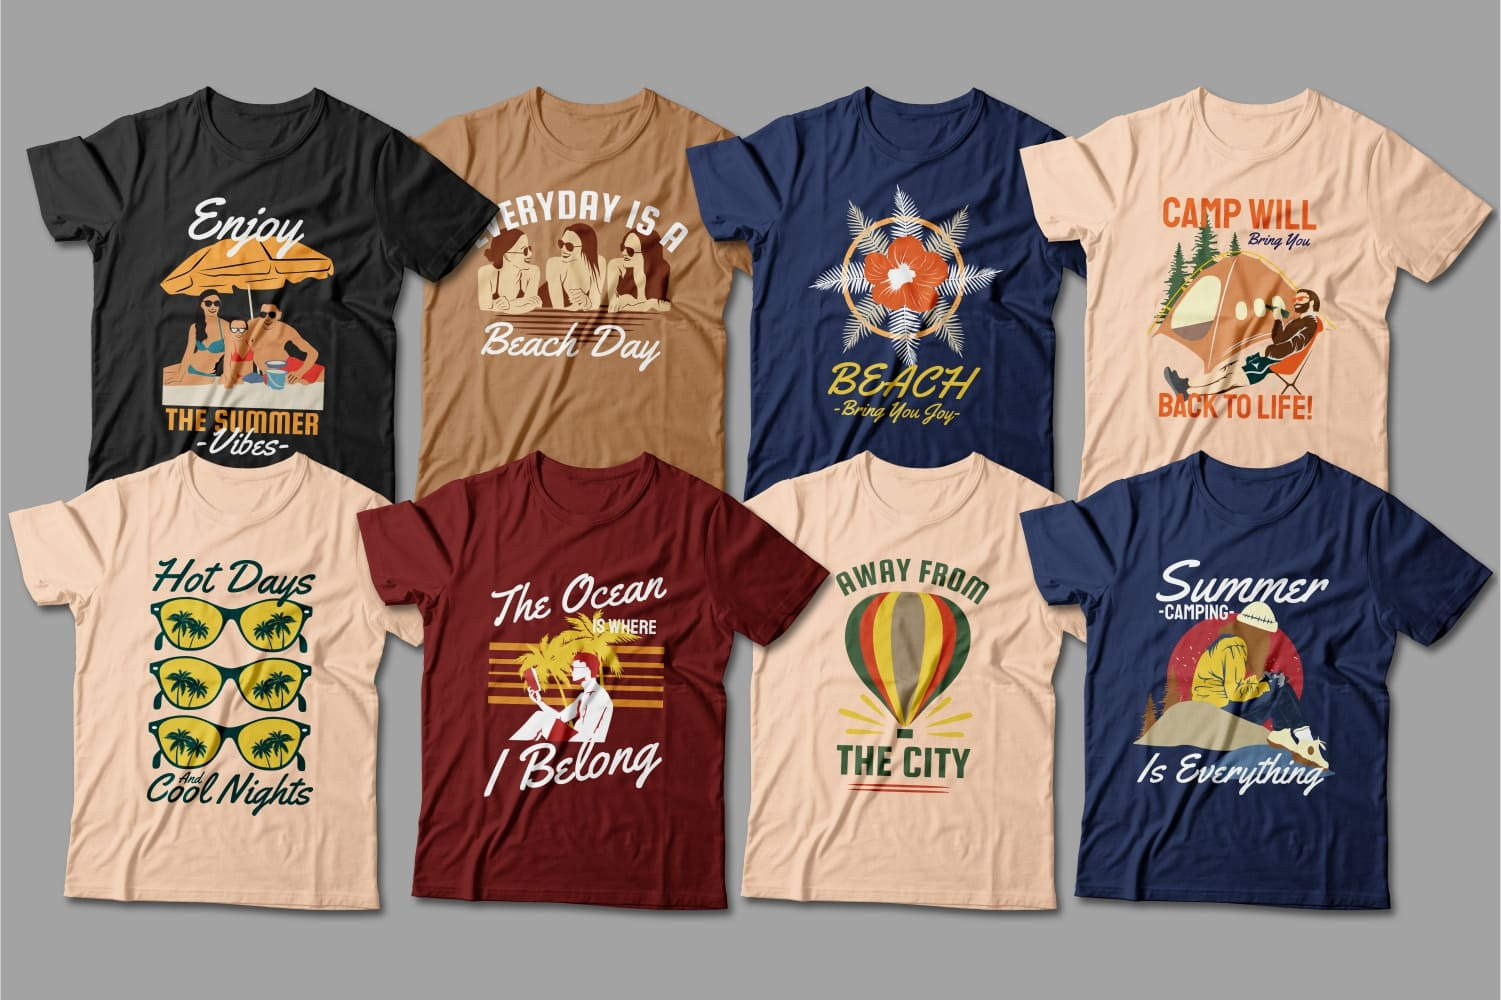 Summer T-shirts in different colors with beach relaxation and sunglasses.